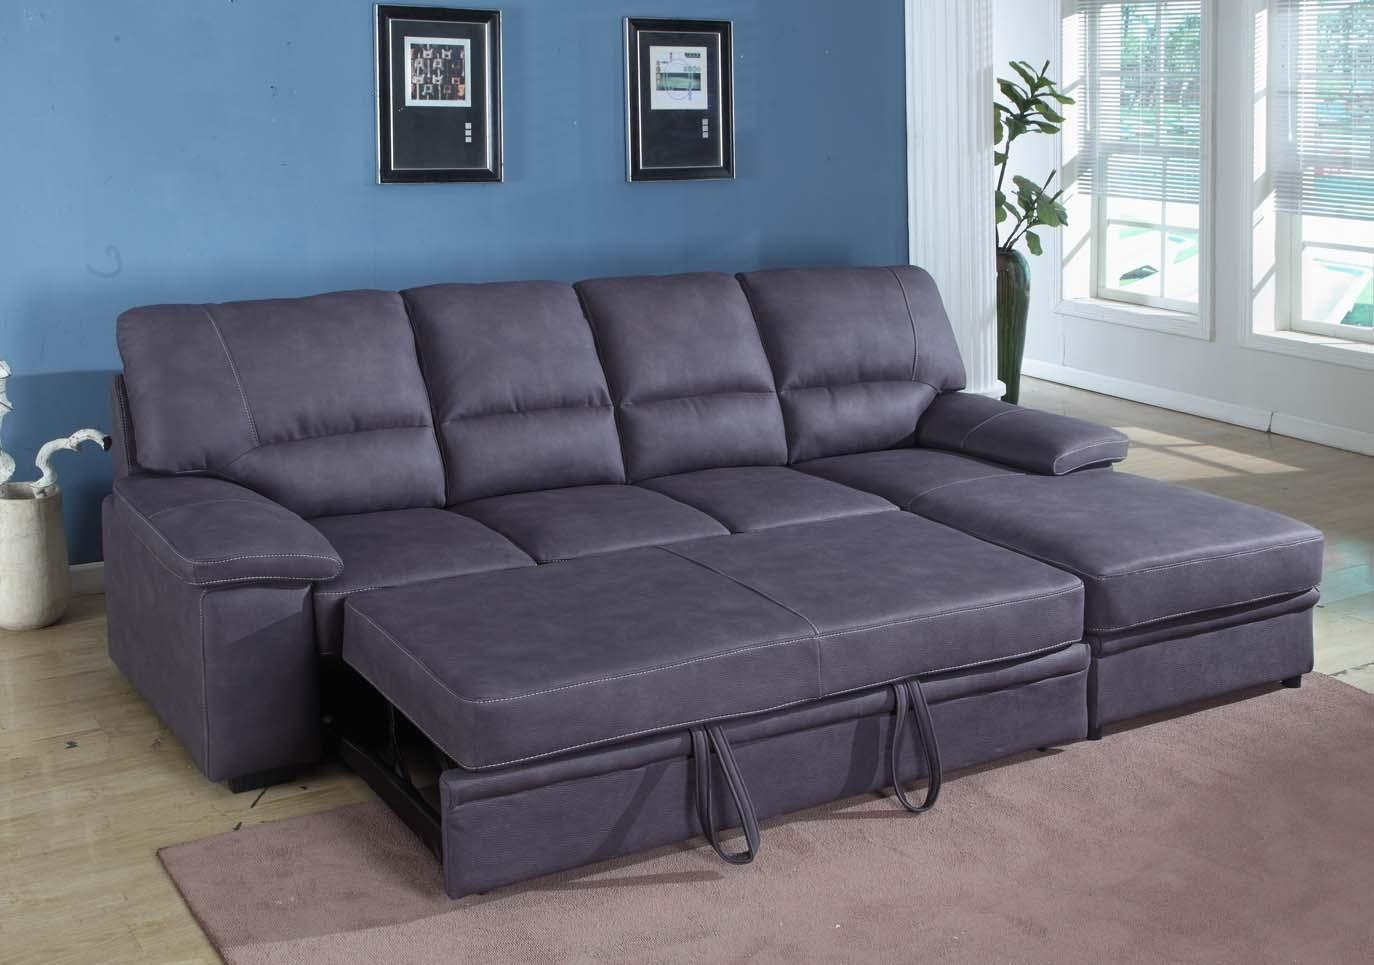 Gray Sectional Sofa | Home Designjohn Regarding Sectional Sofa Ideas (Image 15 of 20)